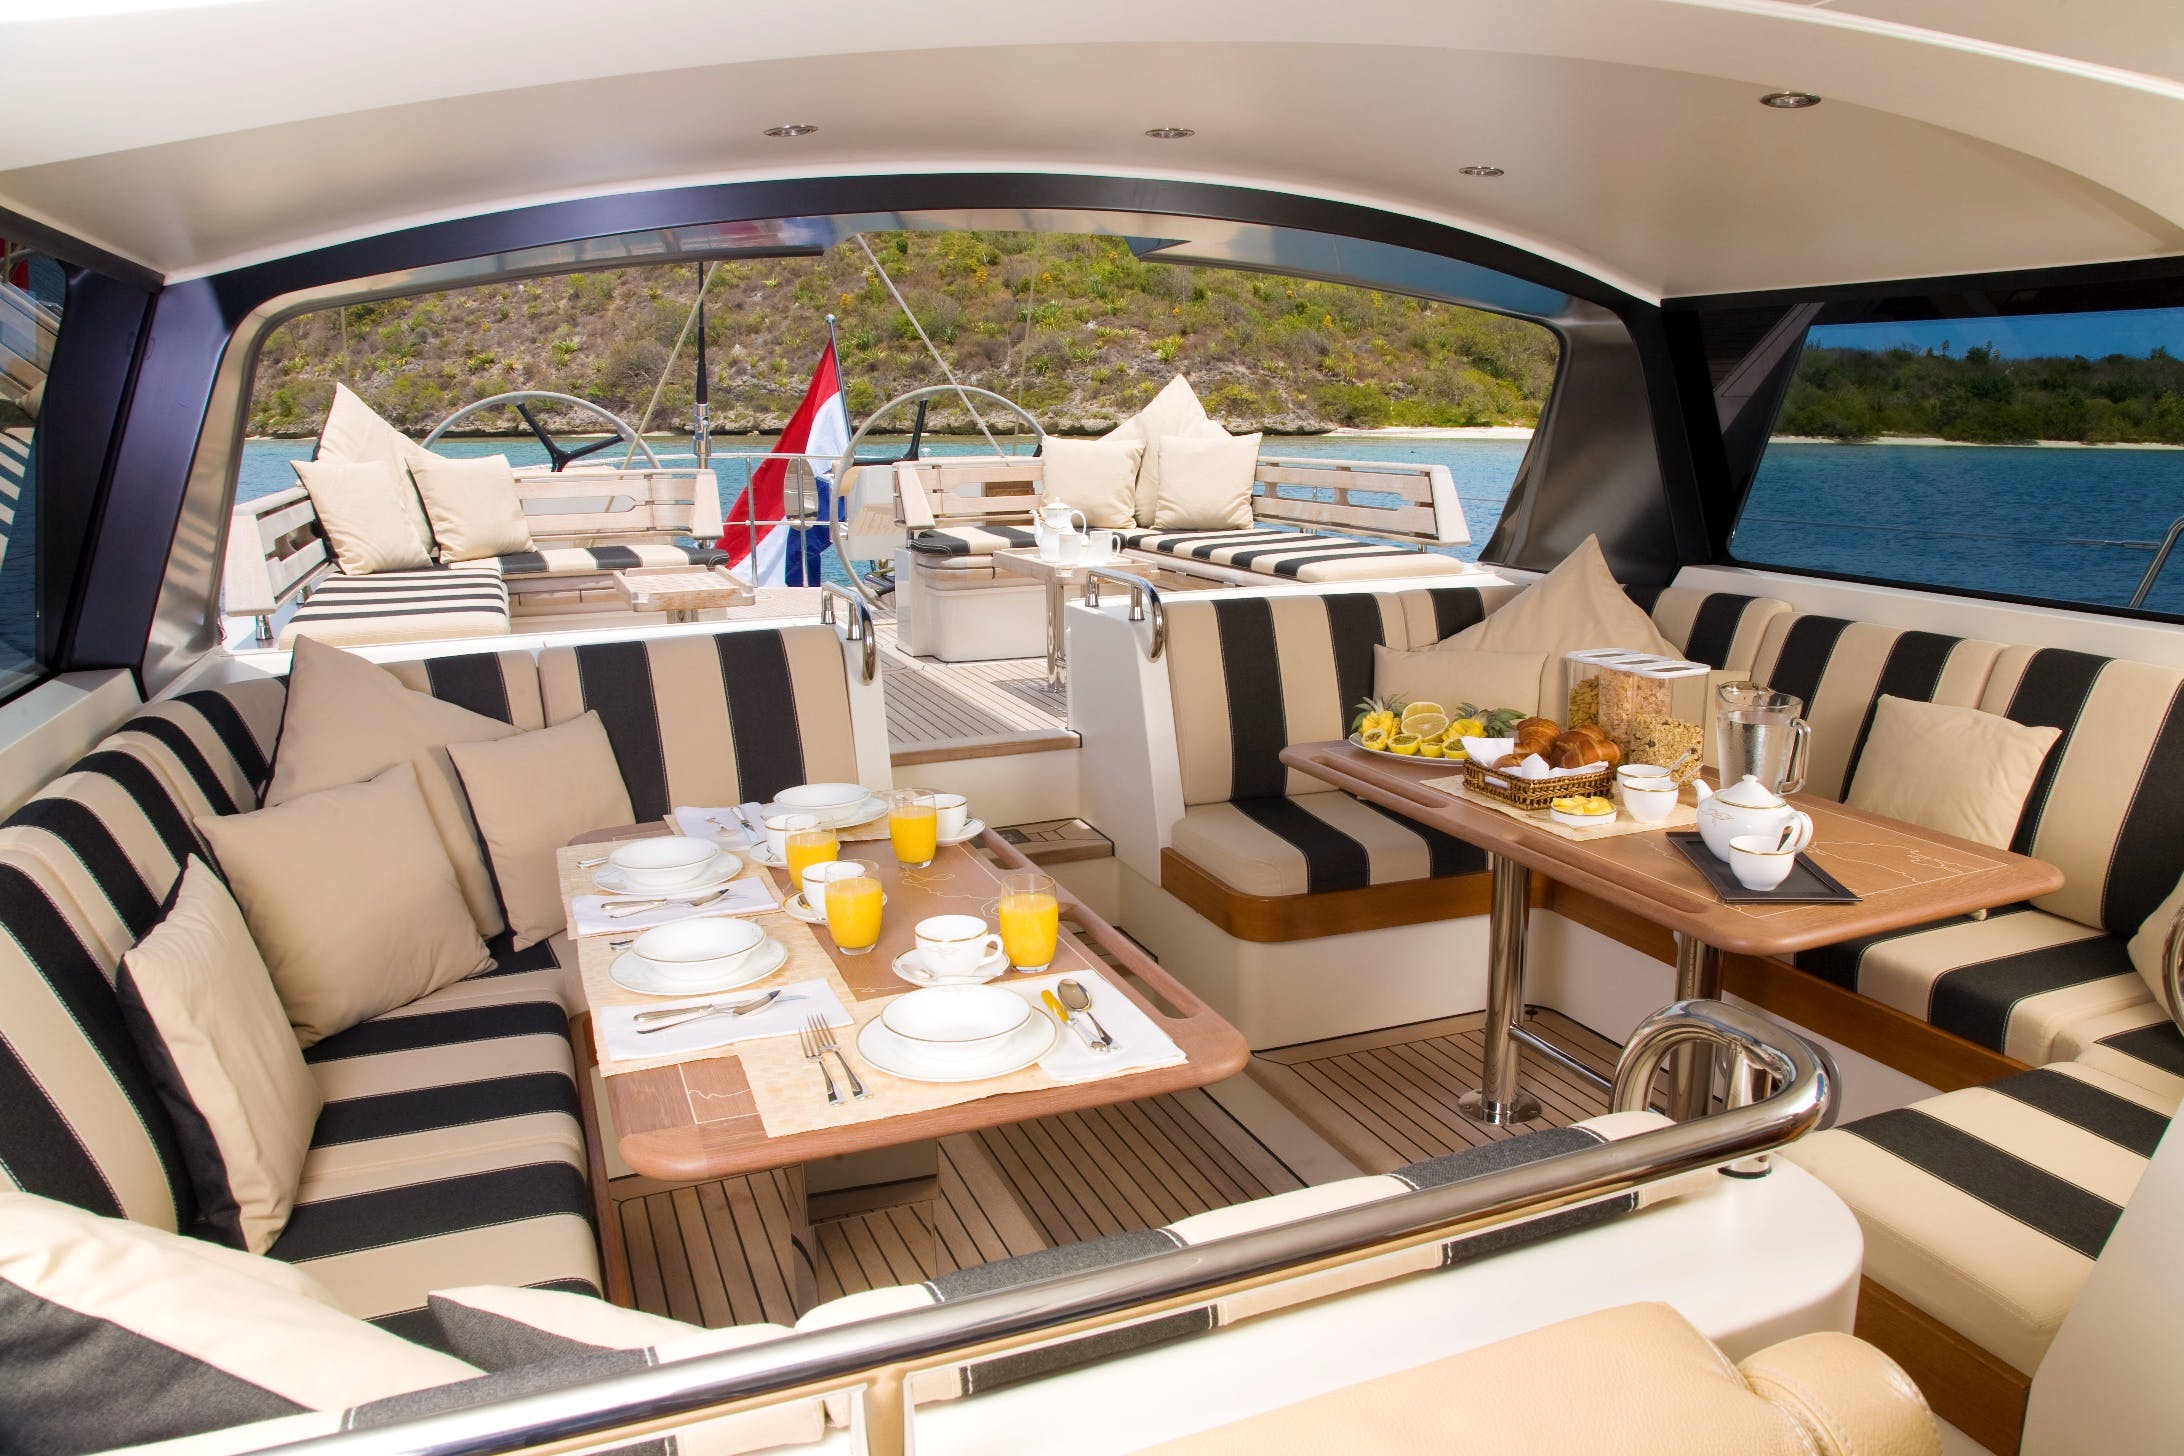 Seasonal Rates for ICARUS Private Luxury Yacht For Charter